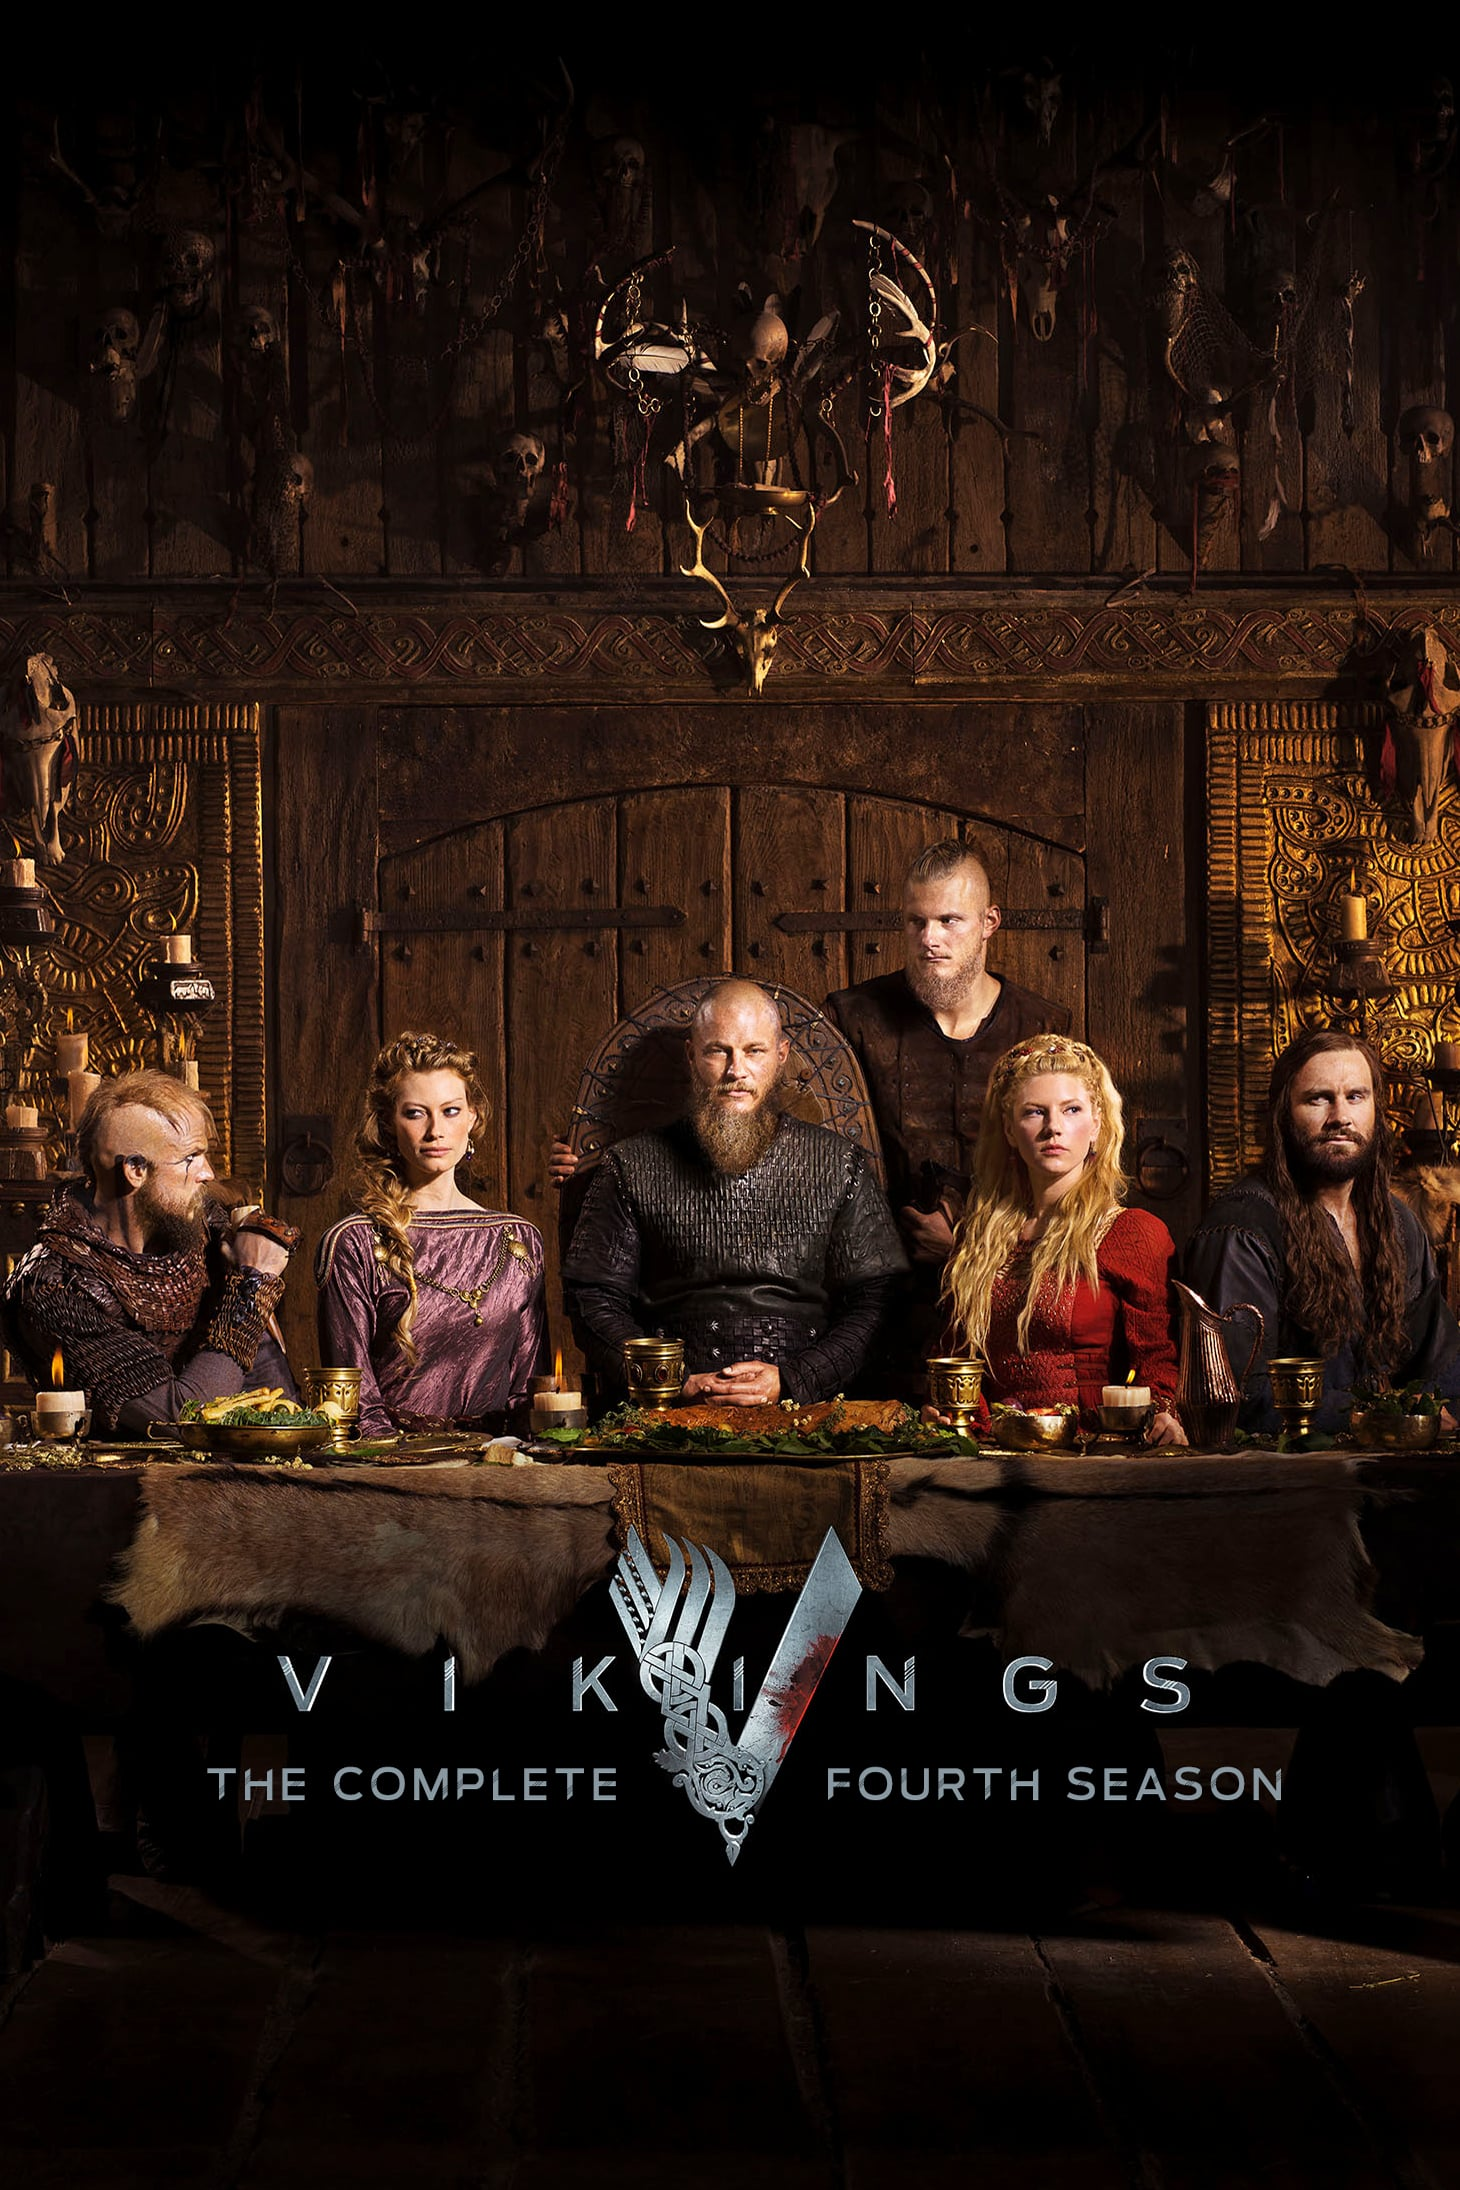 Vikings Season 4 (2016) Episode 01-20 End